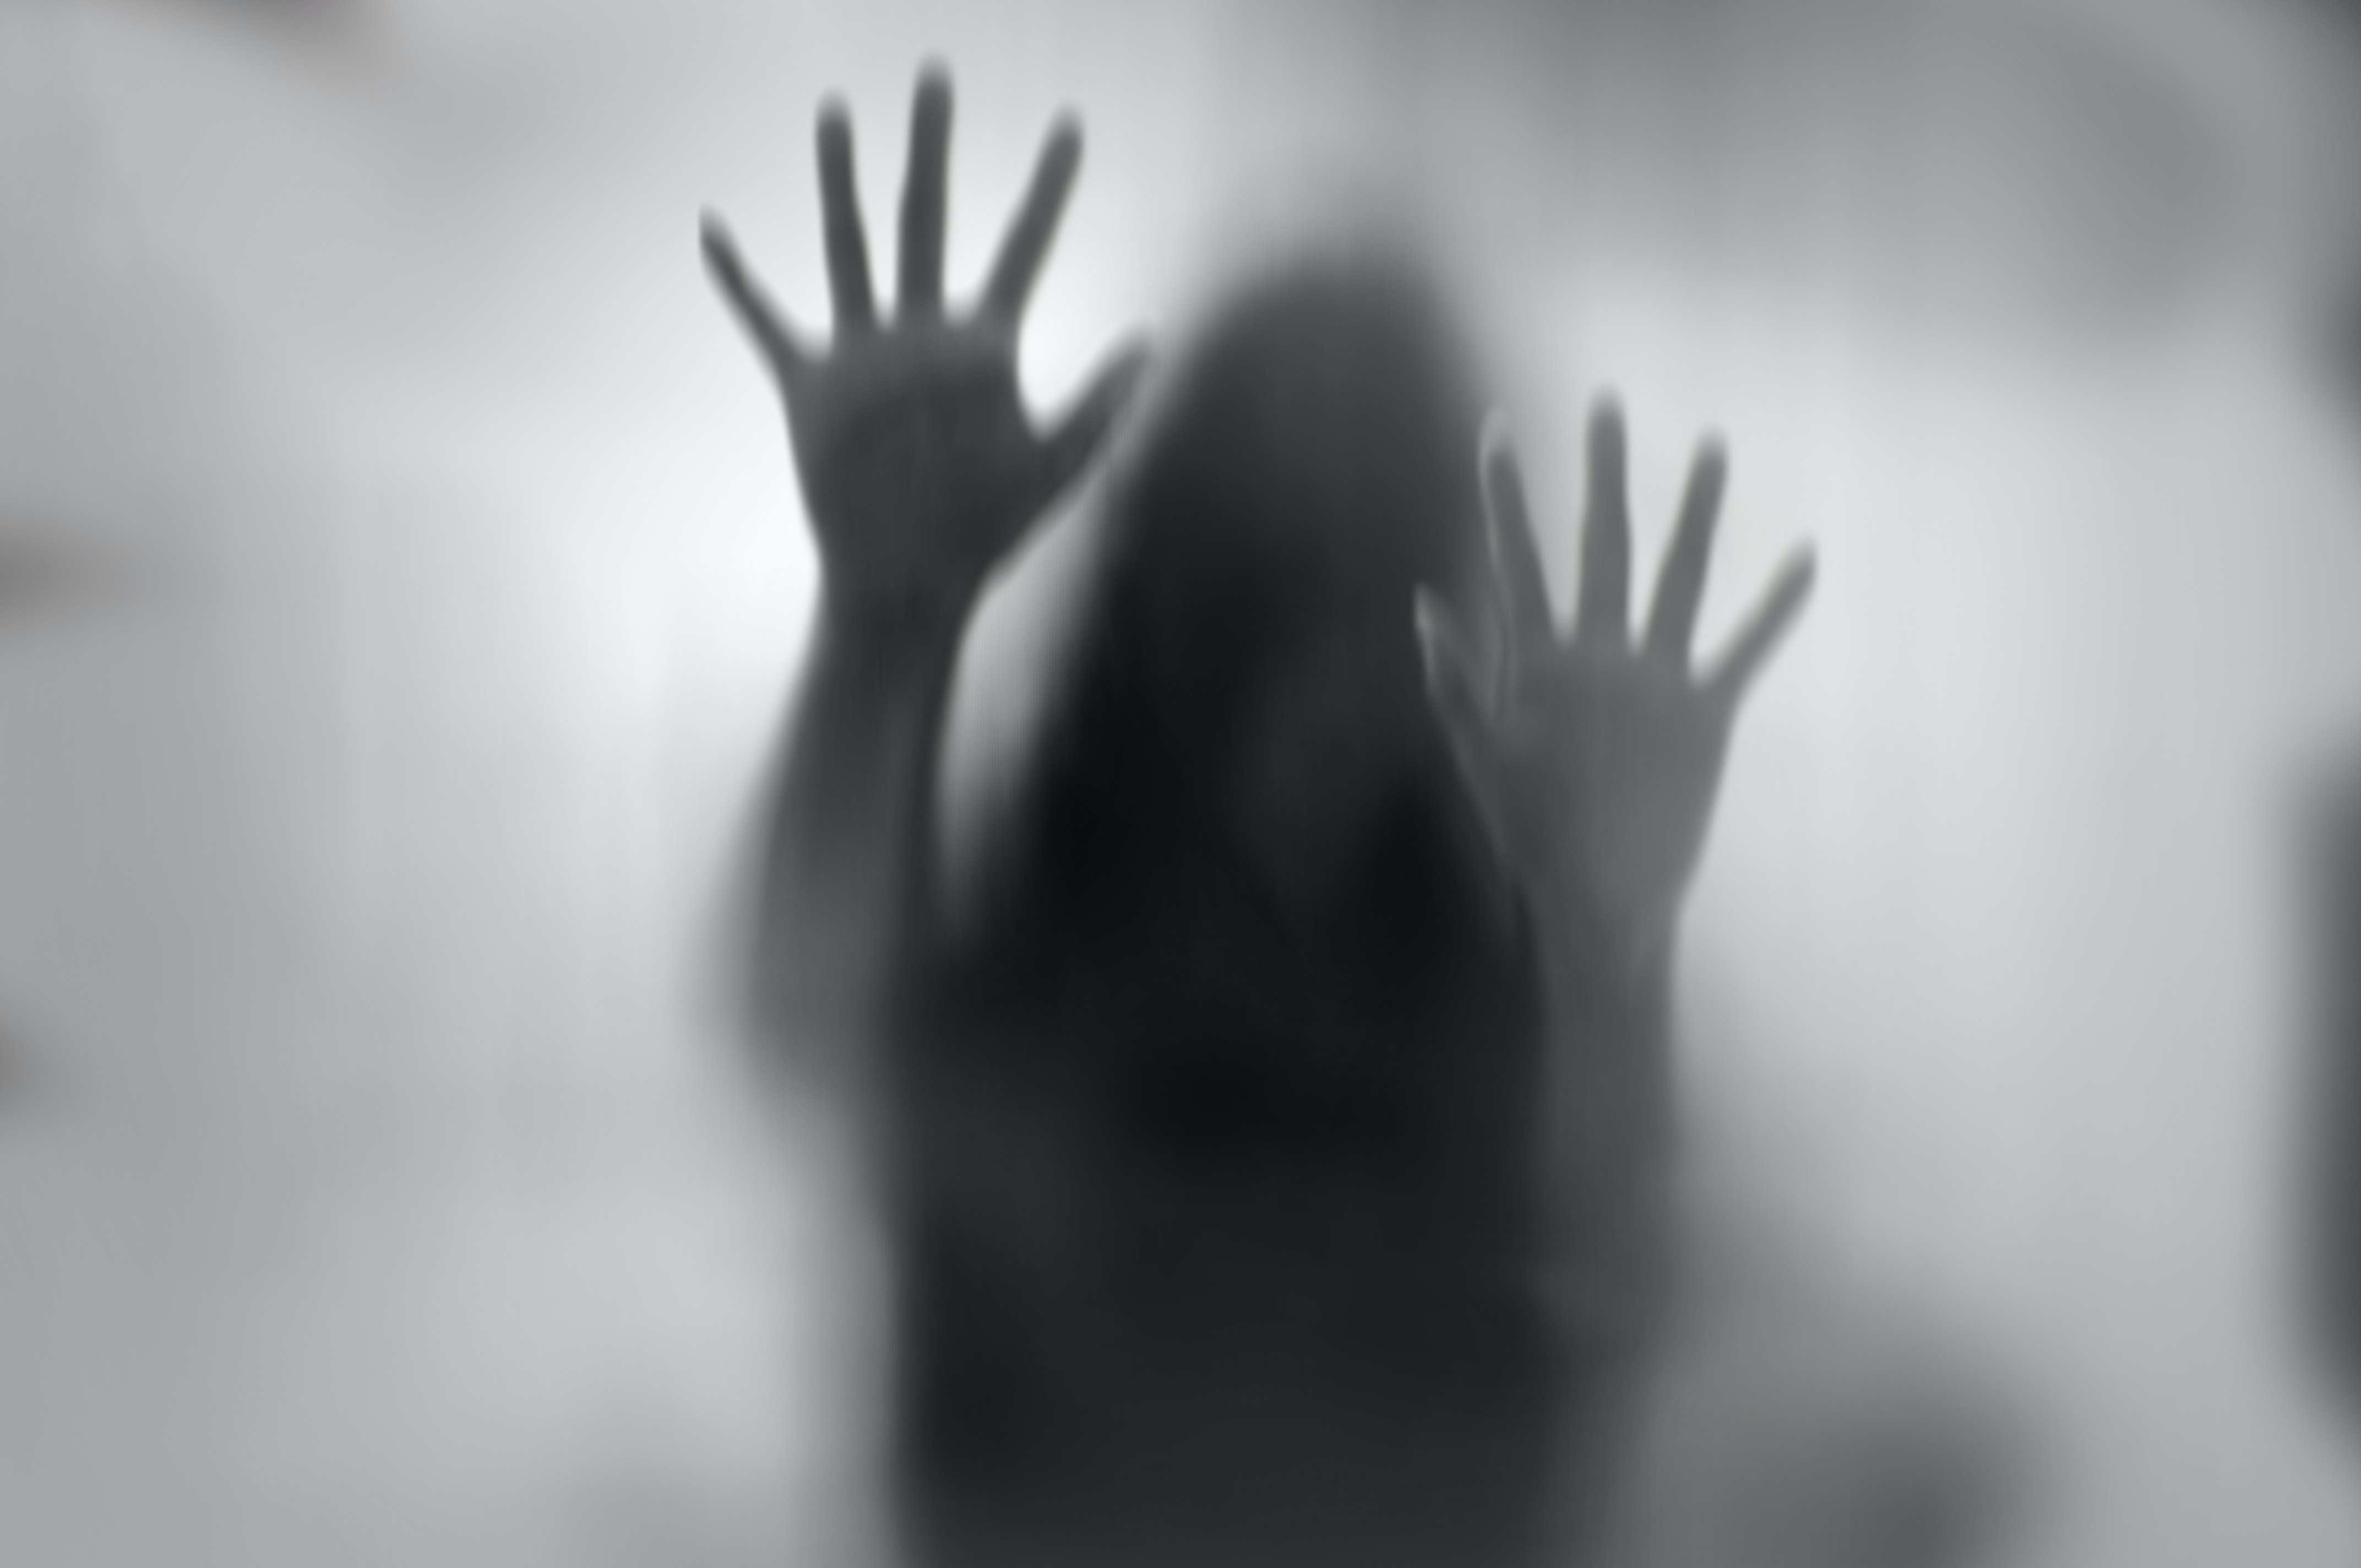 The top three scientific explanations for ghost sightings